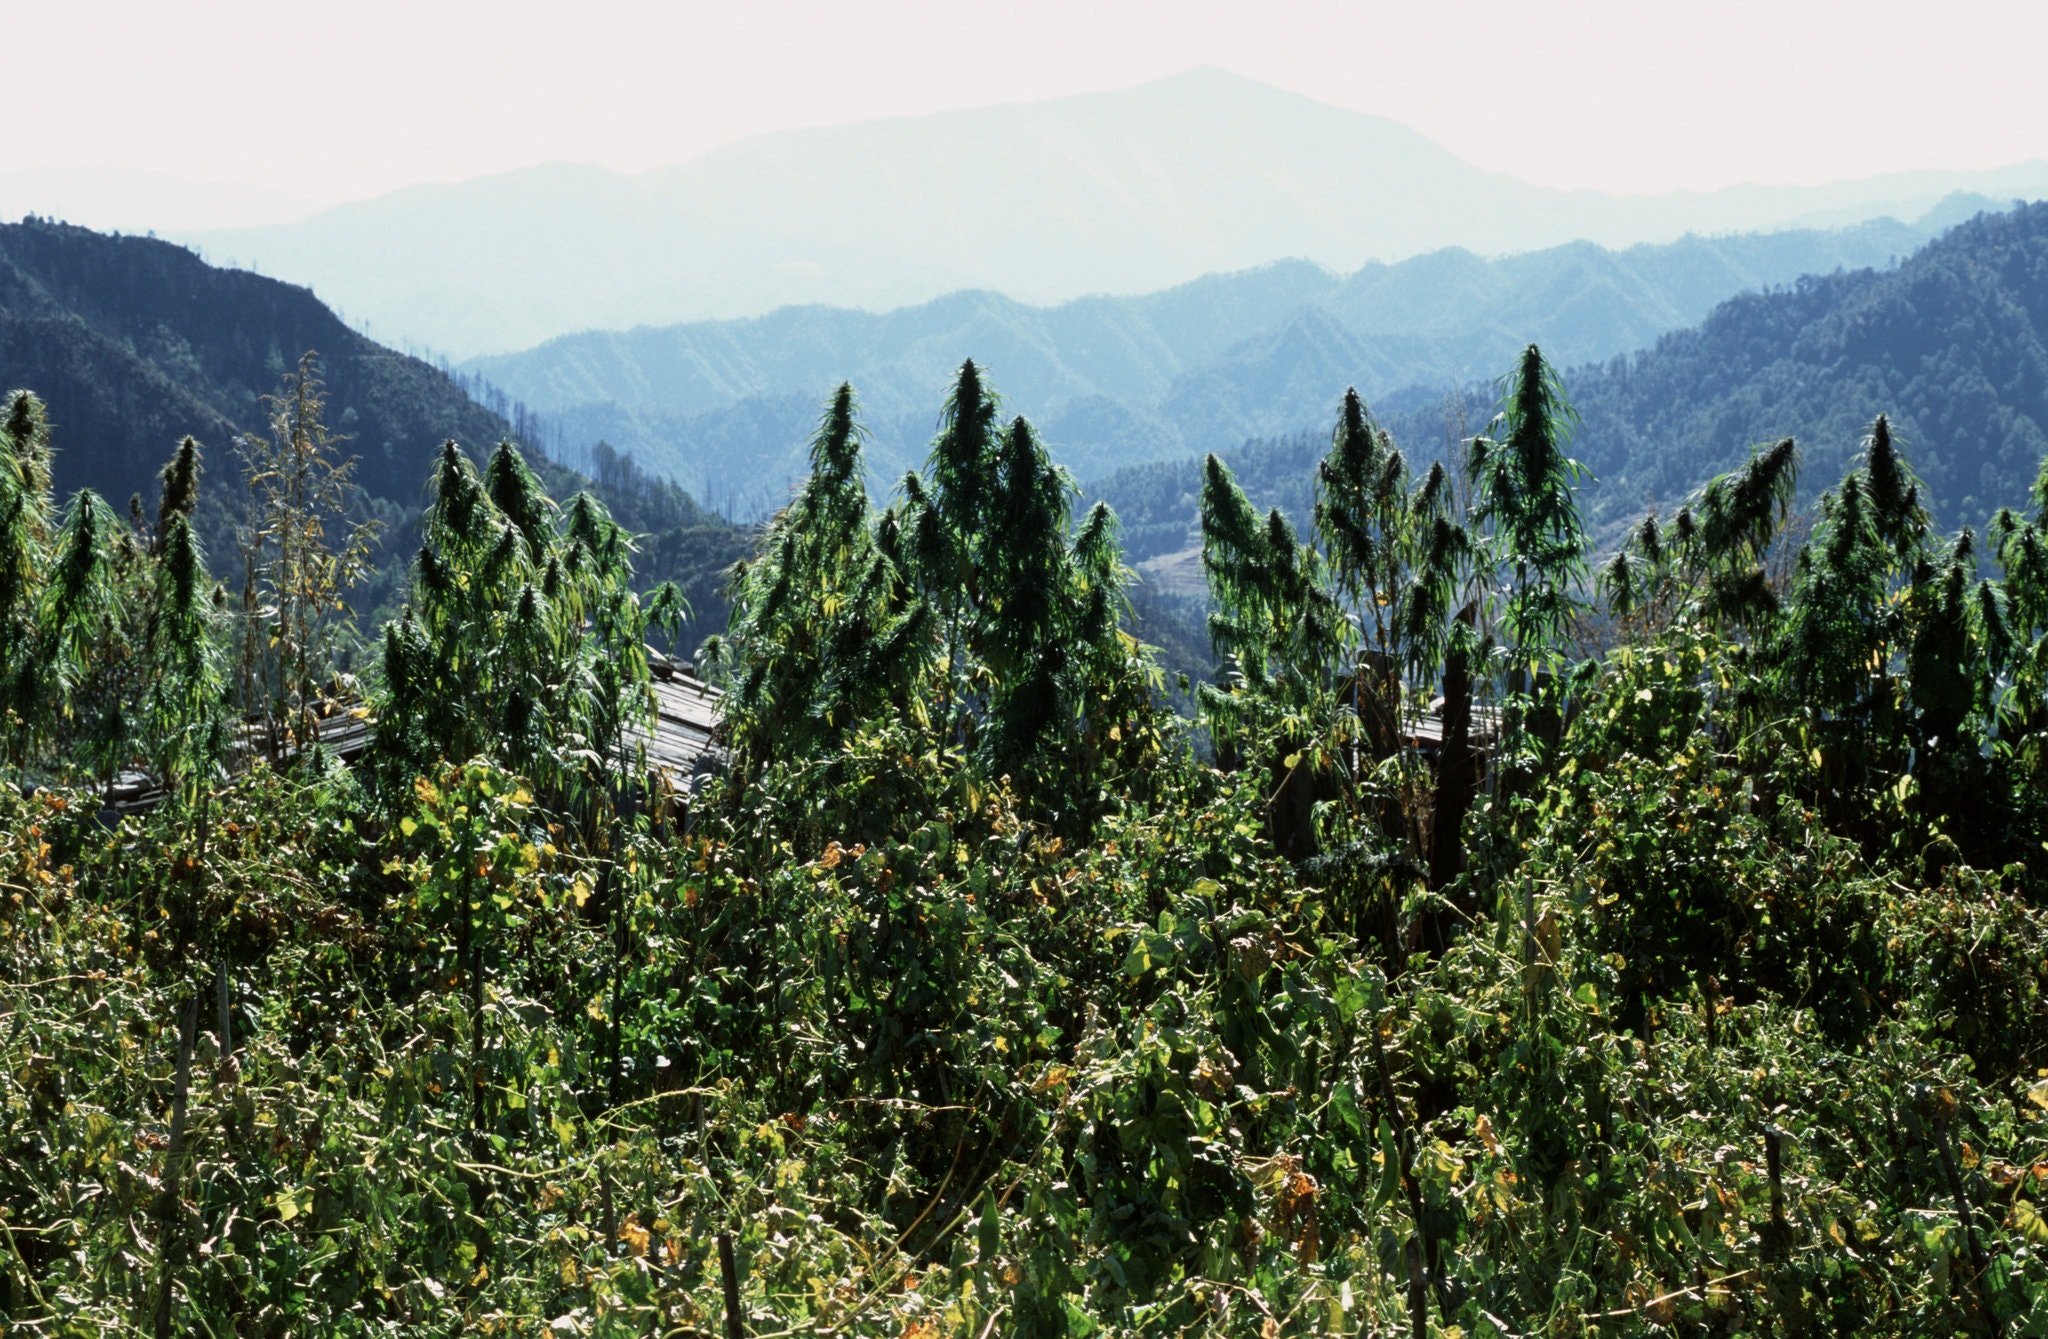 Cannabis growing in Yunnan Province in China in 2004. Yunnan is now licensing companies to cultivate the plant to produce cannabidiol.CreditCreditLeisa Tyler/LightRocket, via Getty Images